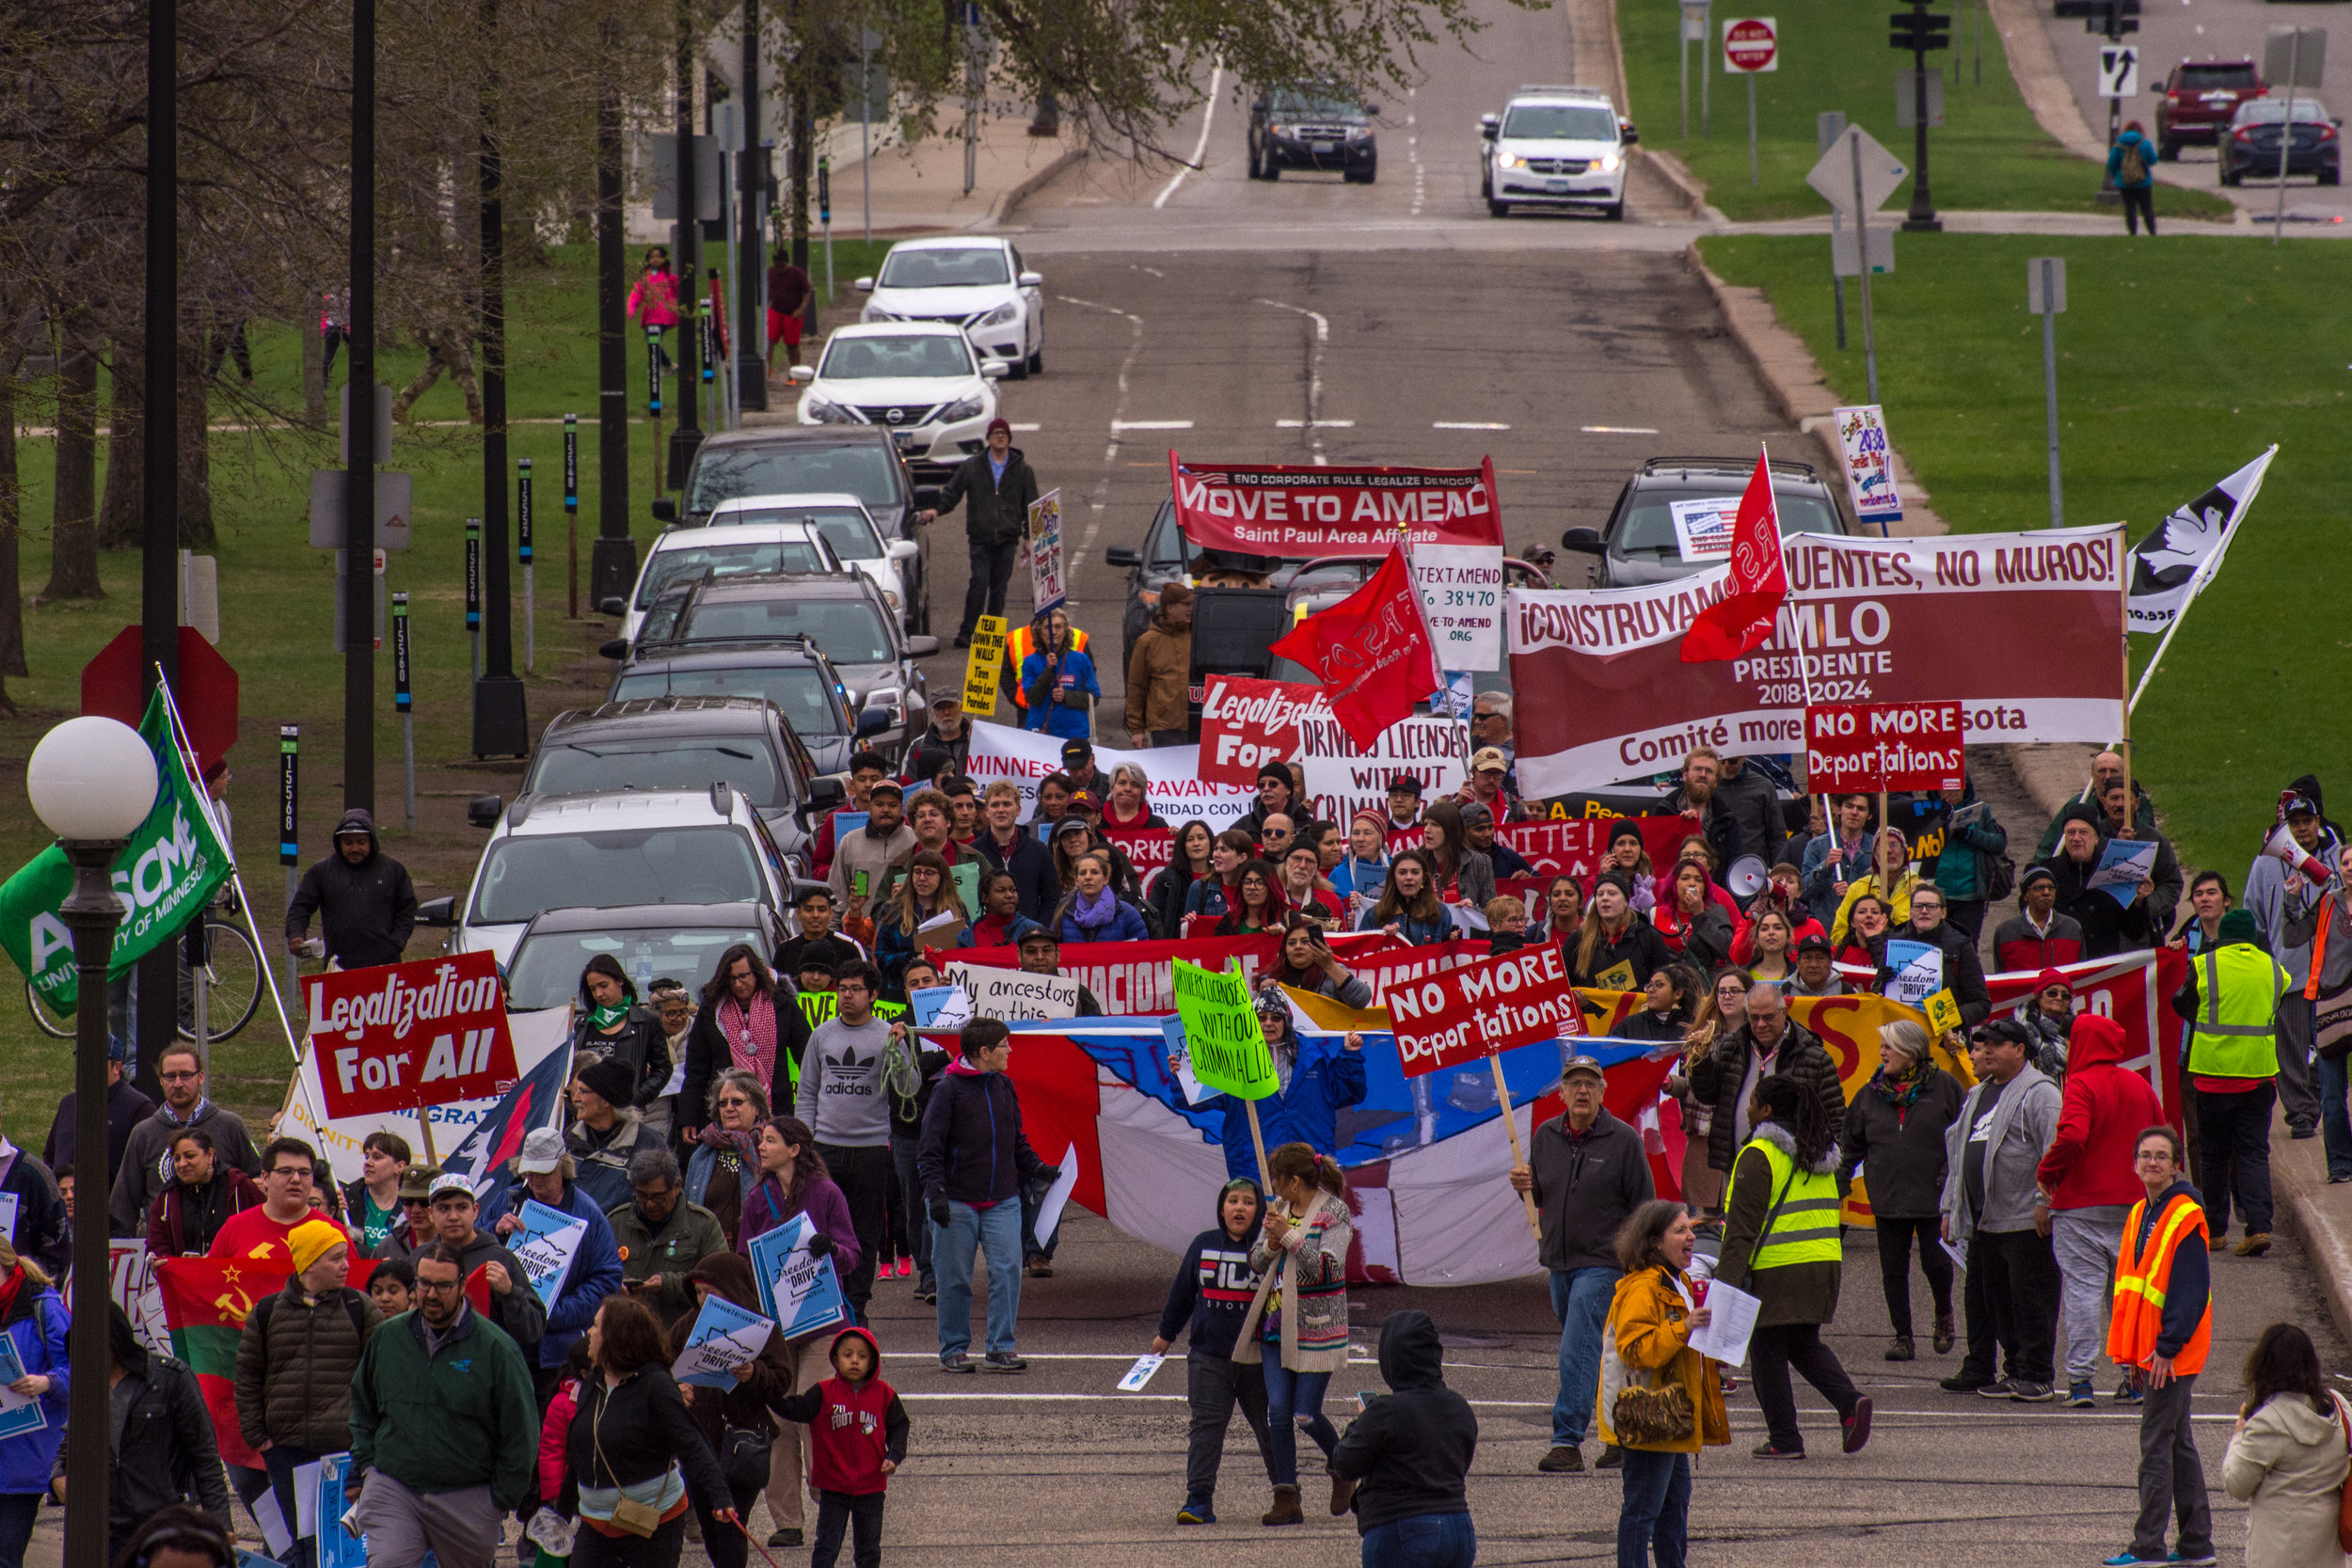 DYFIT was happy to support the May Day Labor and Immigrant's Rights March and continue our exploration of street embodiment for justice movements.  Photo by Steven Cohen.